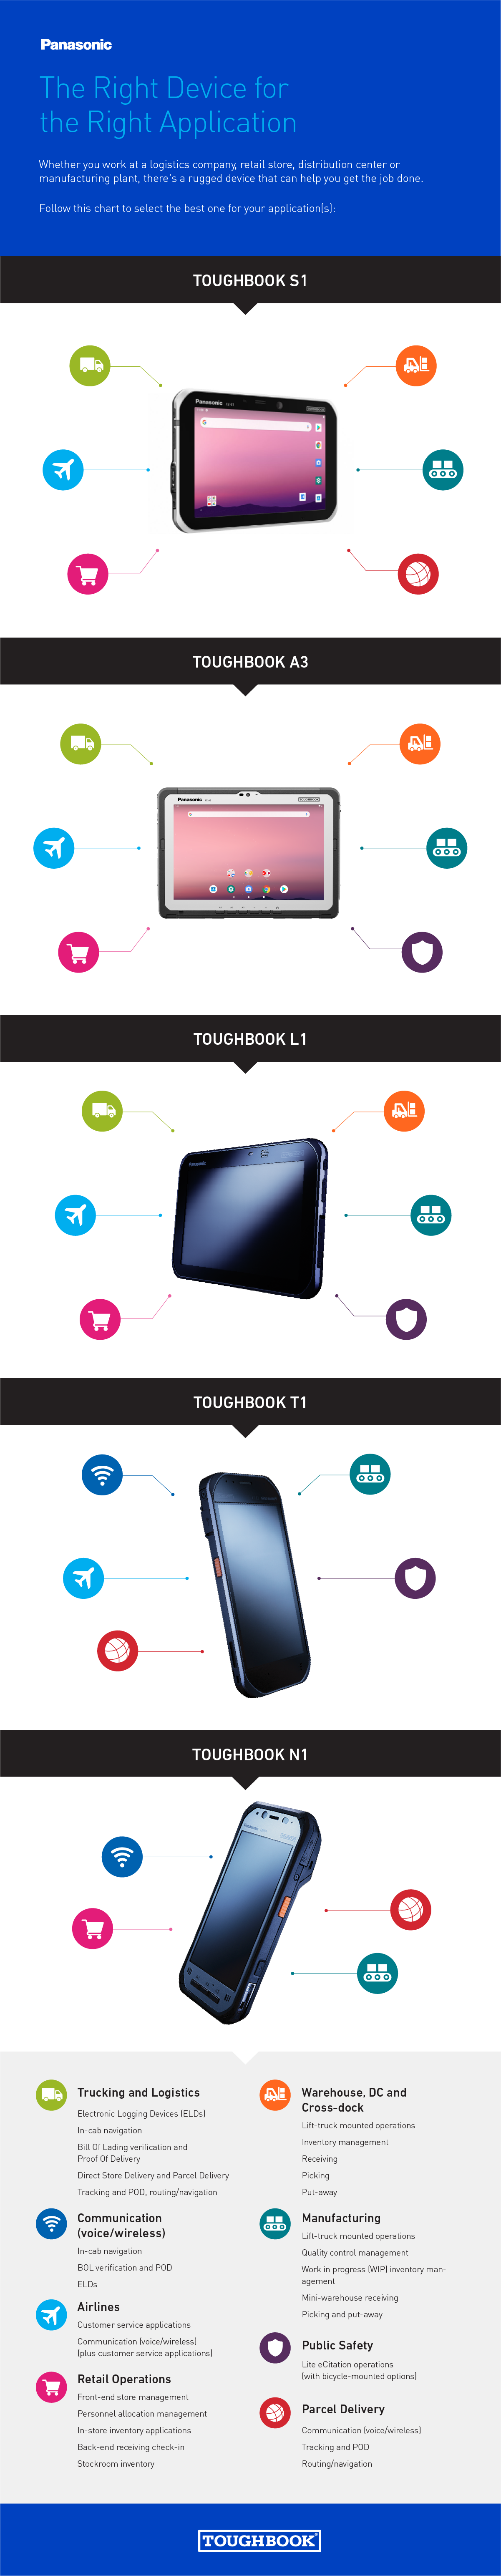 Panasonic_TheRightDevicefortheRightApplication_Infographic.png